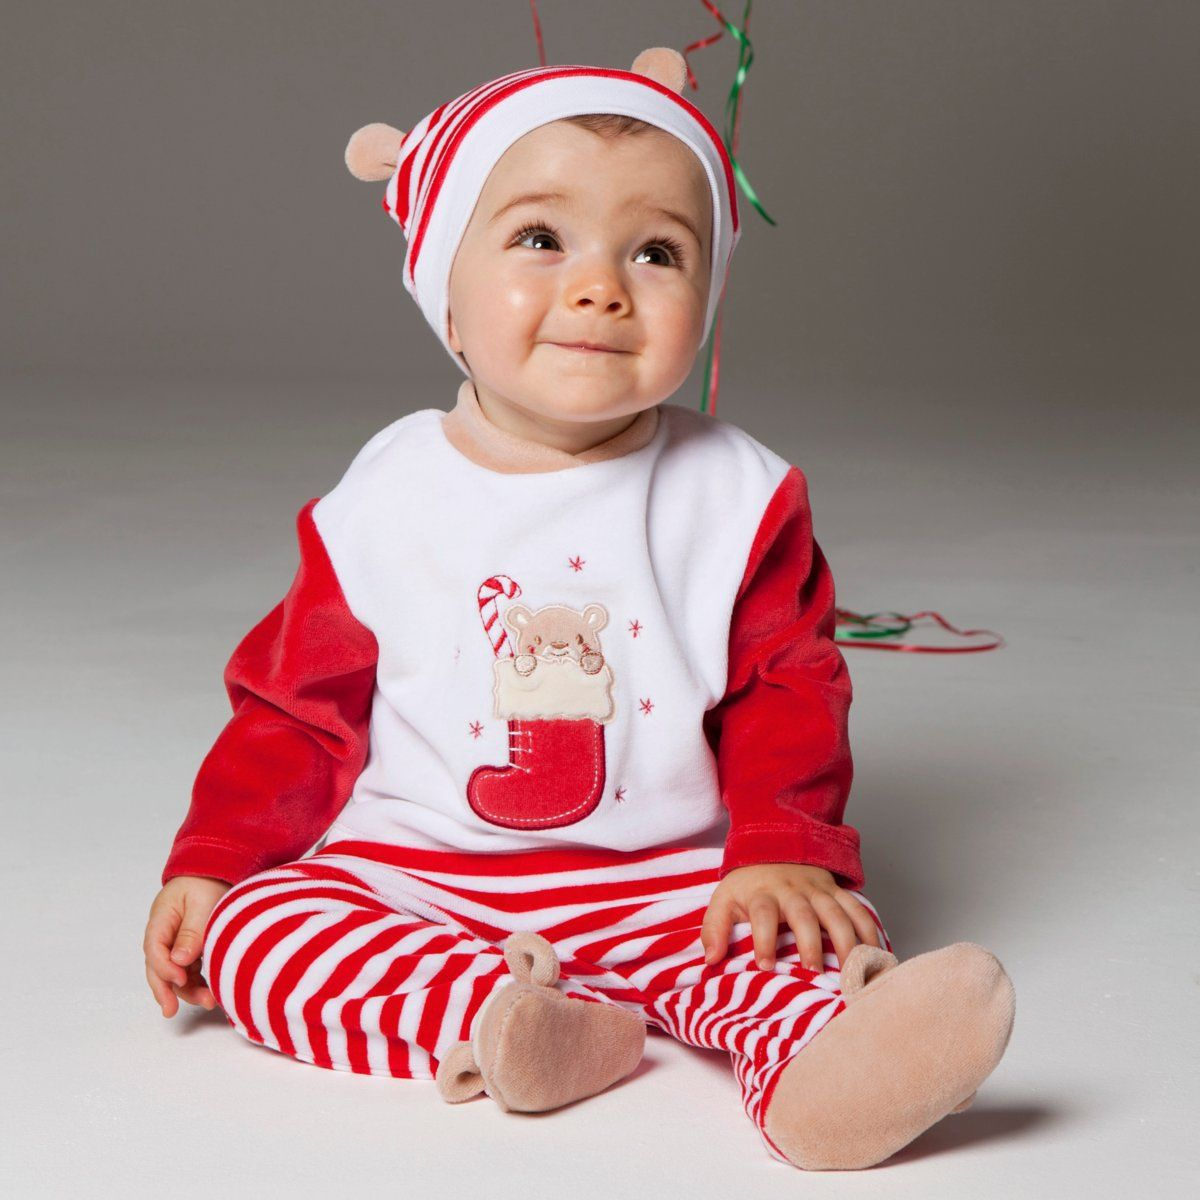 Shop for christmas baby clothes online at Target. Free shipping on purchases over $35 and save 5% every day with your Target REDcard.